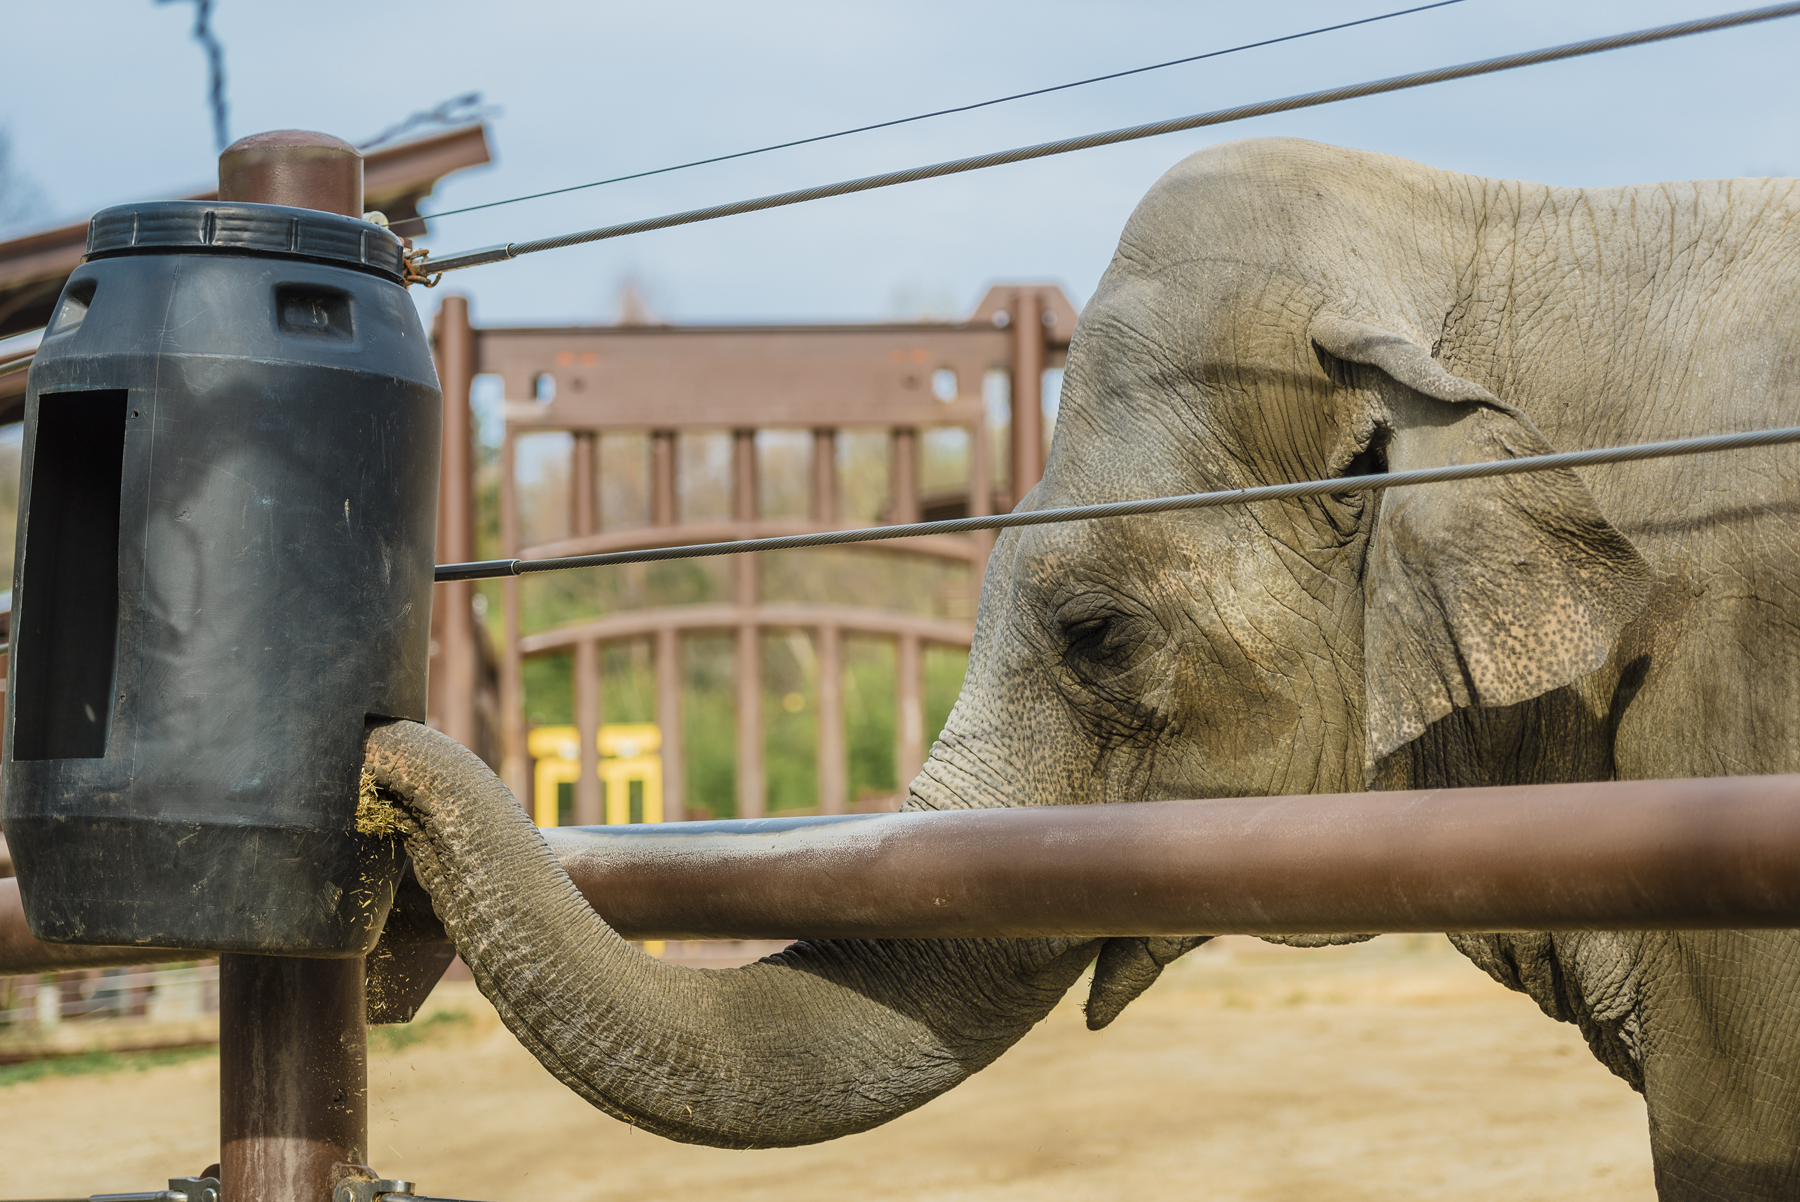 elephant grabbing food out of an puzzle feeder with its trunk